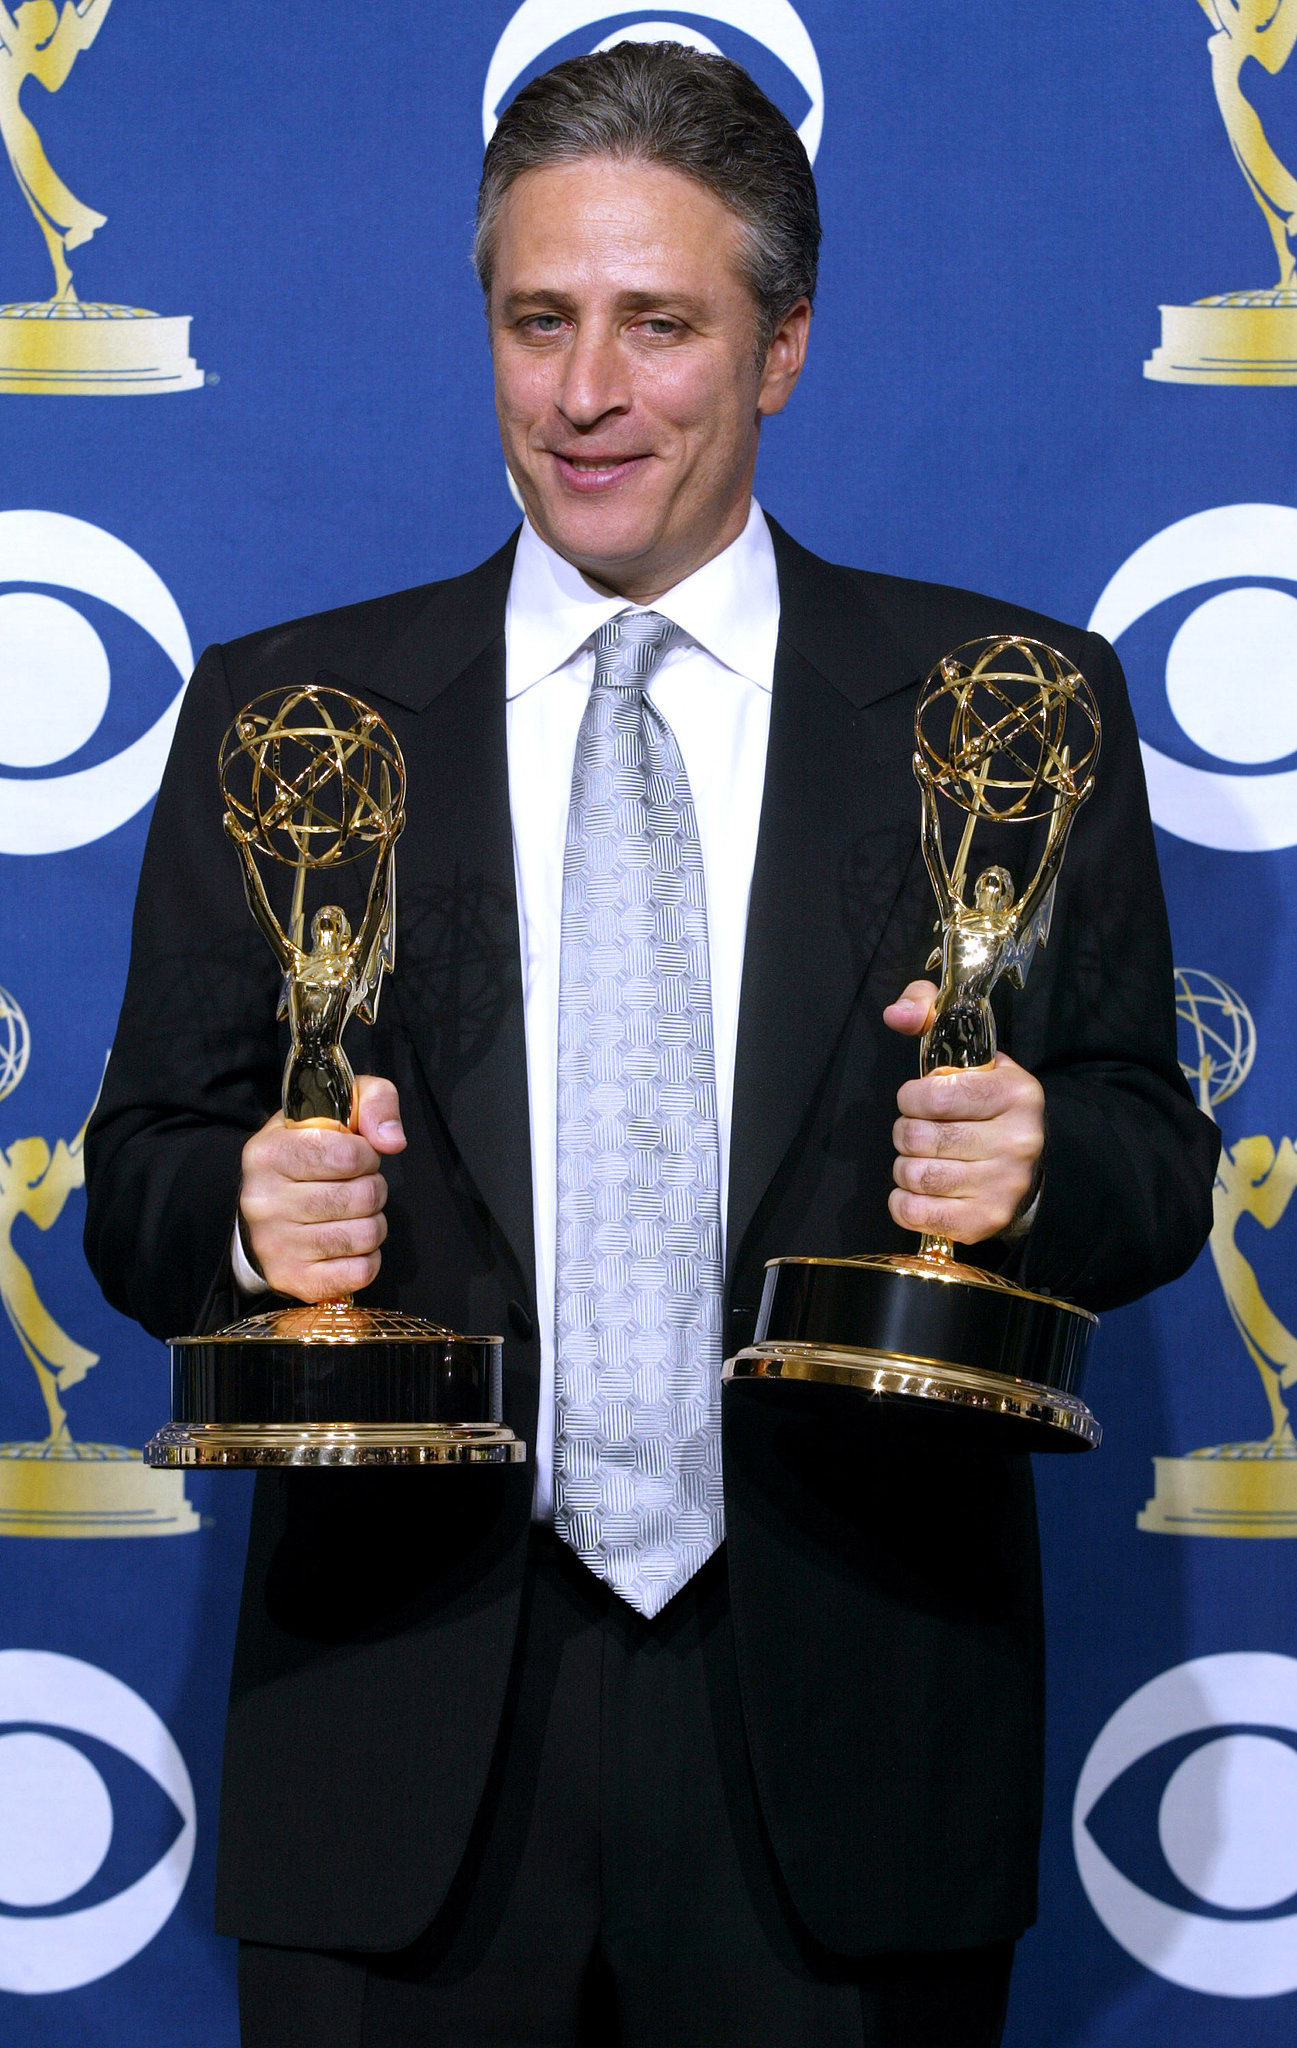 Jon Stewart had his hands full of prizes in 2005.